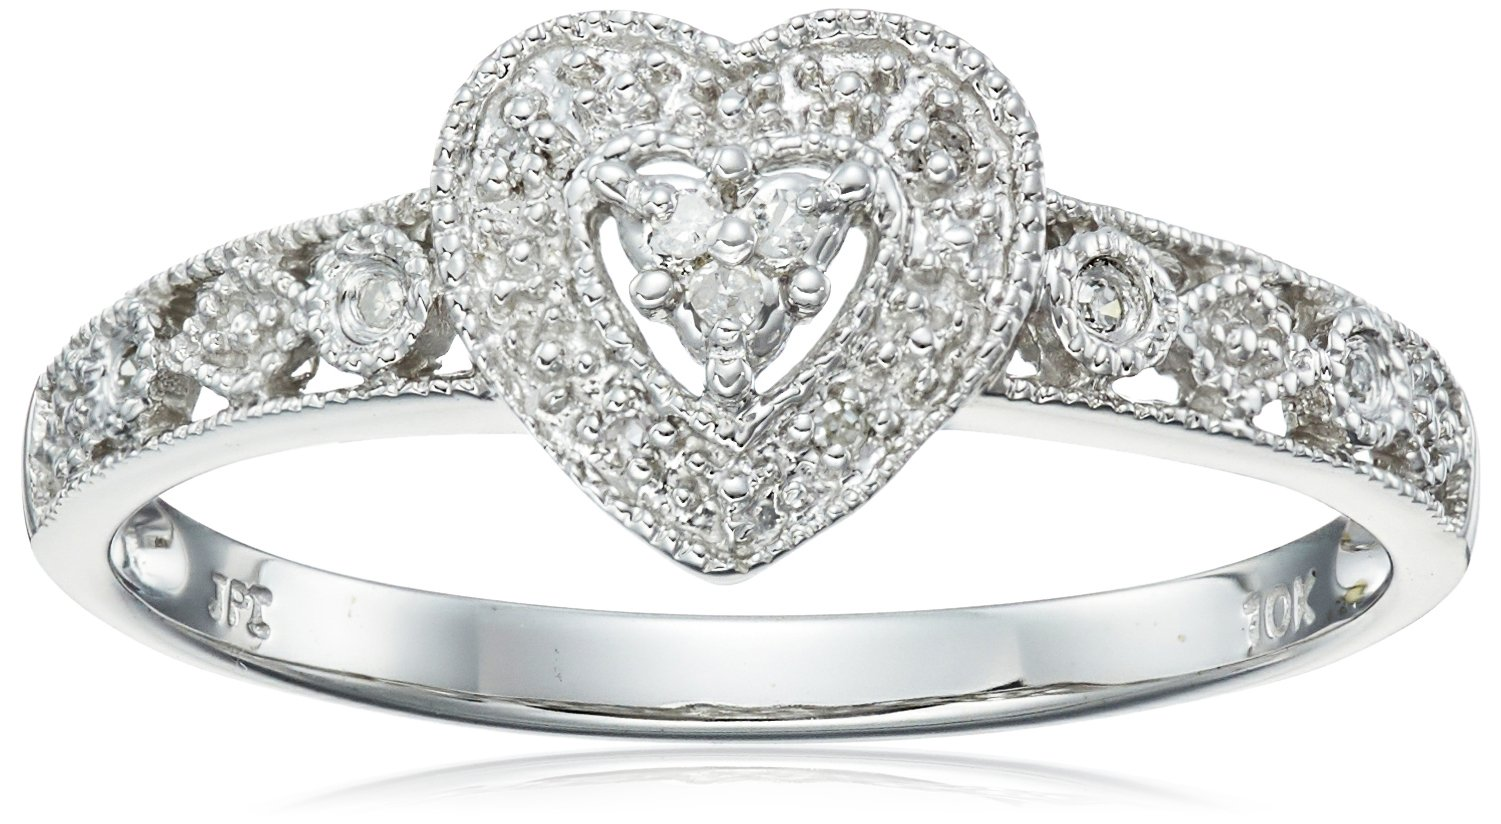 10k White Gold Diamond Heart Ring (0.03 cttw, I-J Color, I2-I3 Clarity), Size 7 by Amazon Collection